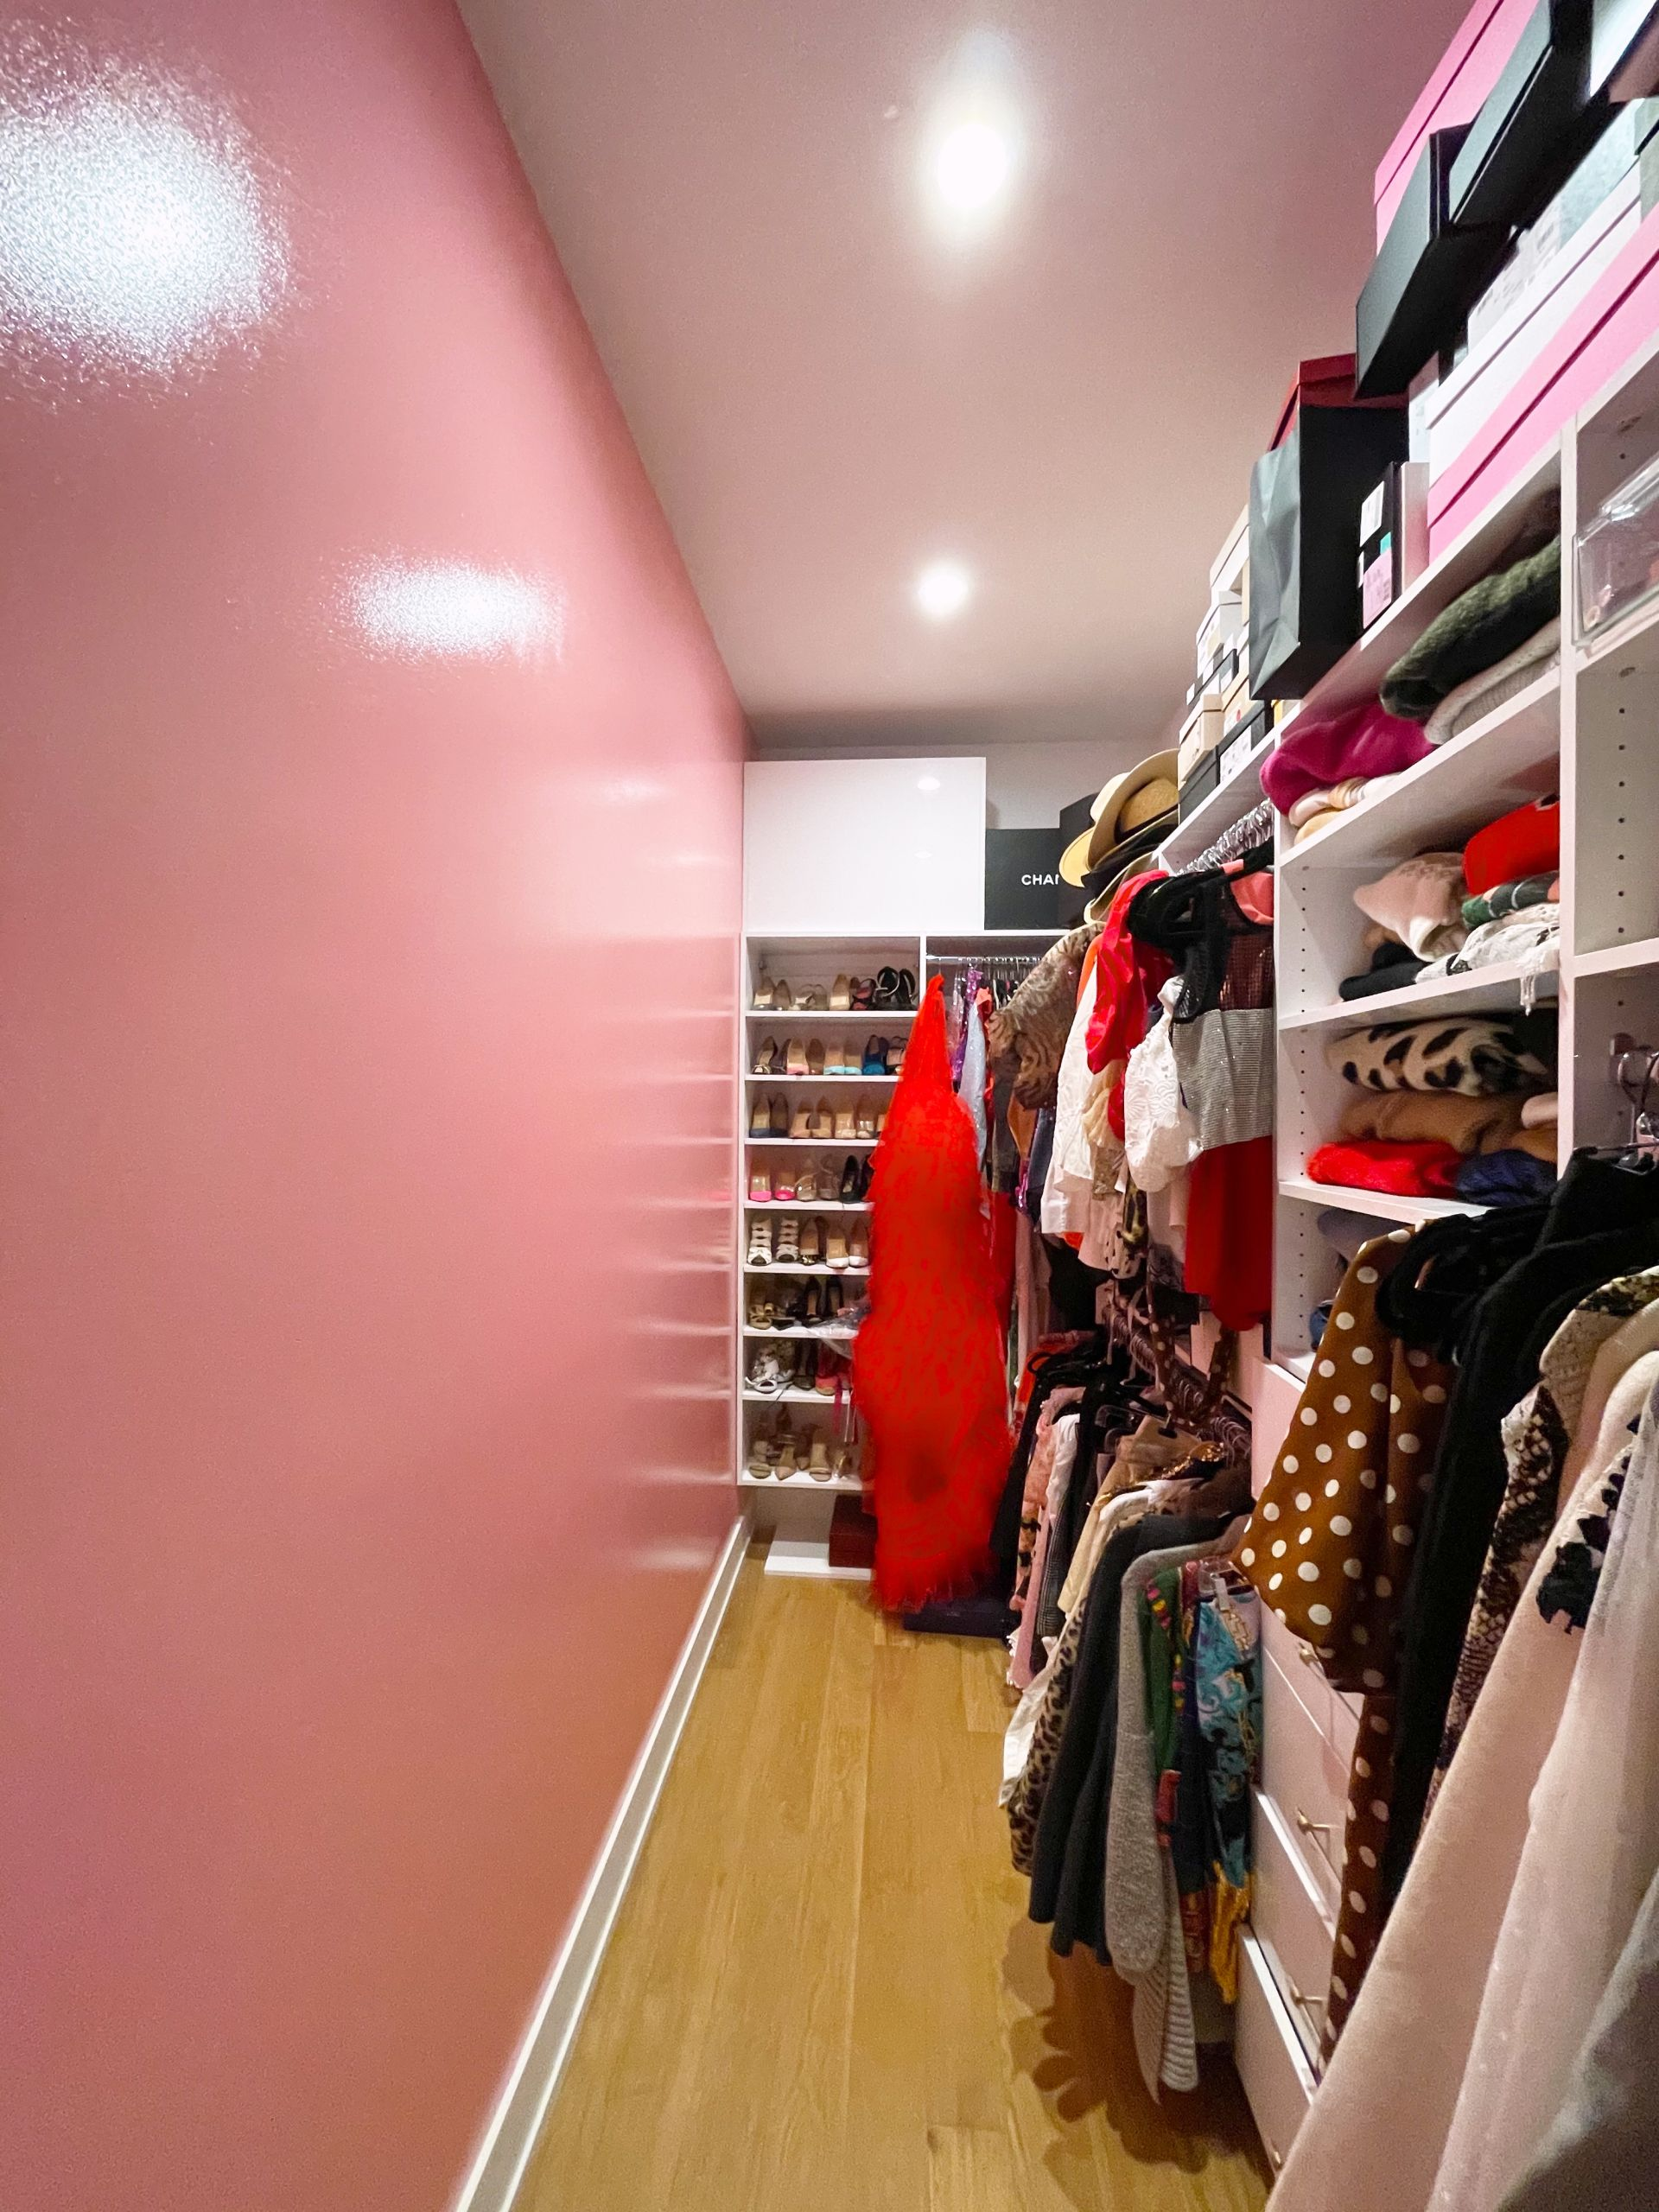 Pink accent wall, best pink color for bedrooms, Benjamin Moore Full Bloom Pink, Best Pink wall spaces, High Gloss Pink Walls, Perfect Pink Paint for Homes, How to glam up your closet, Red Soles and Red Wine Closet, Jennifer Worman's Home, Chicago Closets